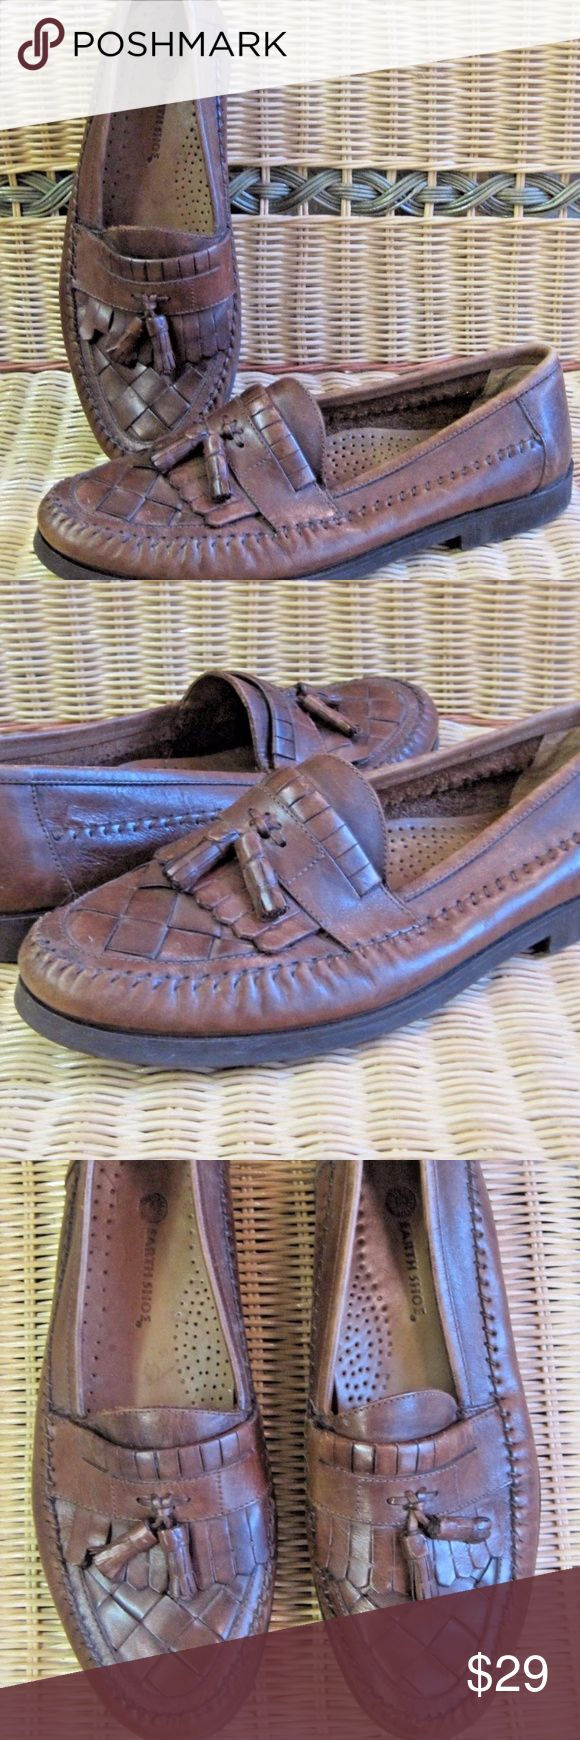 "Earth Shoe Loafers Dale II Brown Leather Tassel Earth Shoe Mens Loafers Dale II Size 11 D Brown Leather Tassel Slip On Loafer  Item condition:Pre-owned ""gently worn"" Earth Shoes Loafers & Slip-Ons"